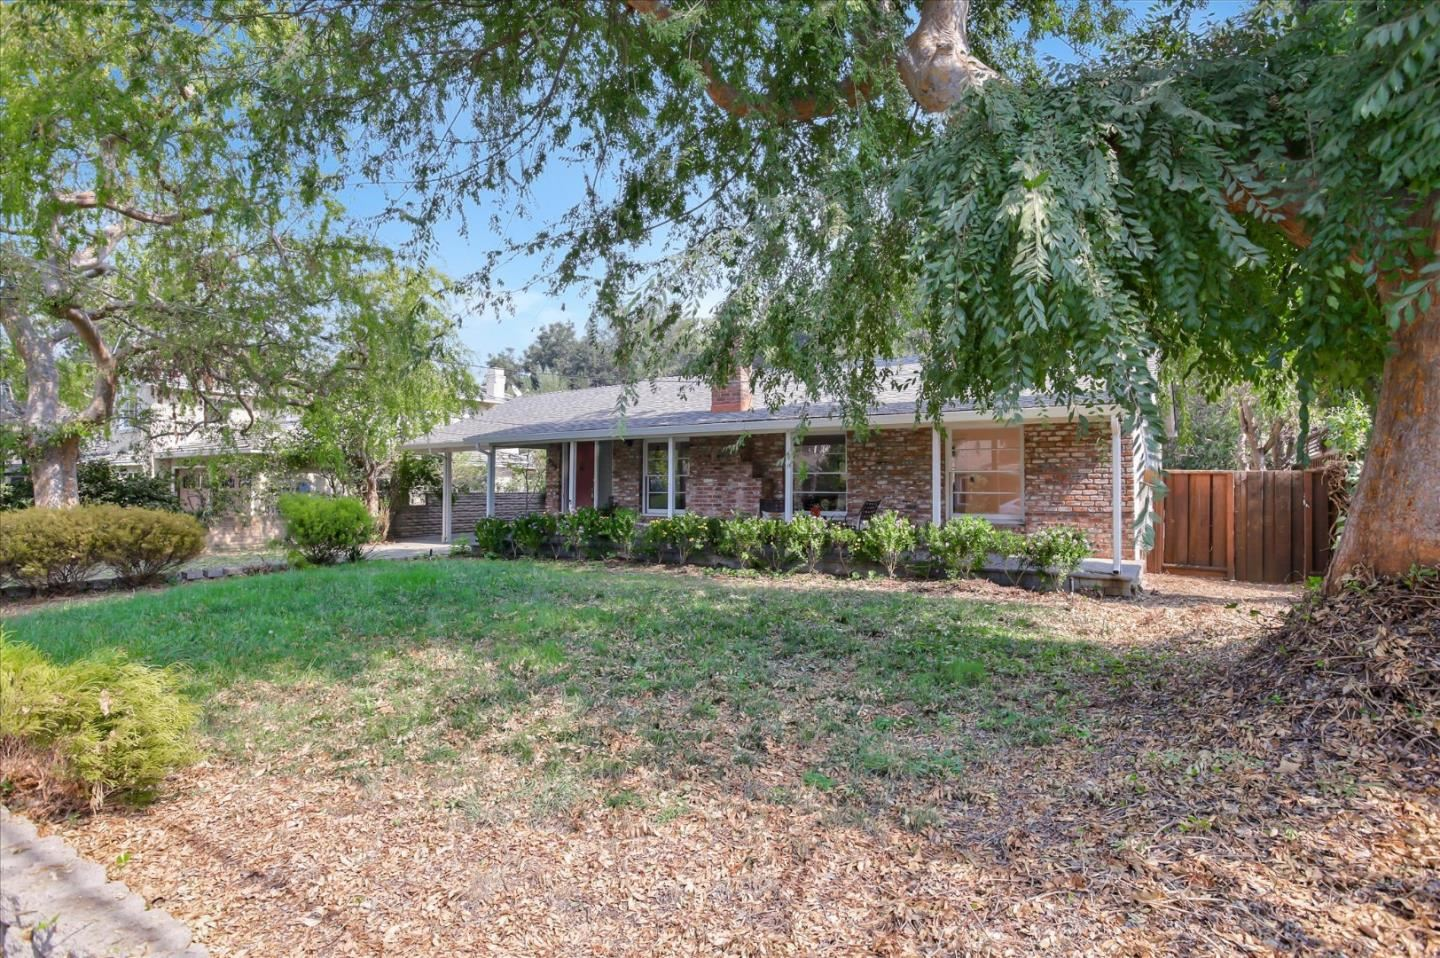 Photo for 929 Russell AVE, LOS ALTOS, CA 94024 (MLS # ML81814391)